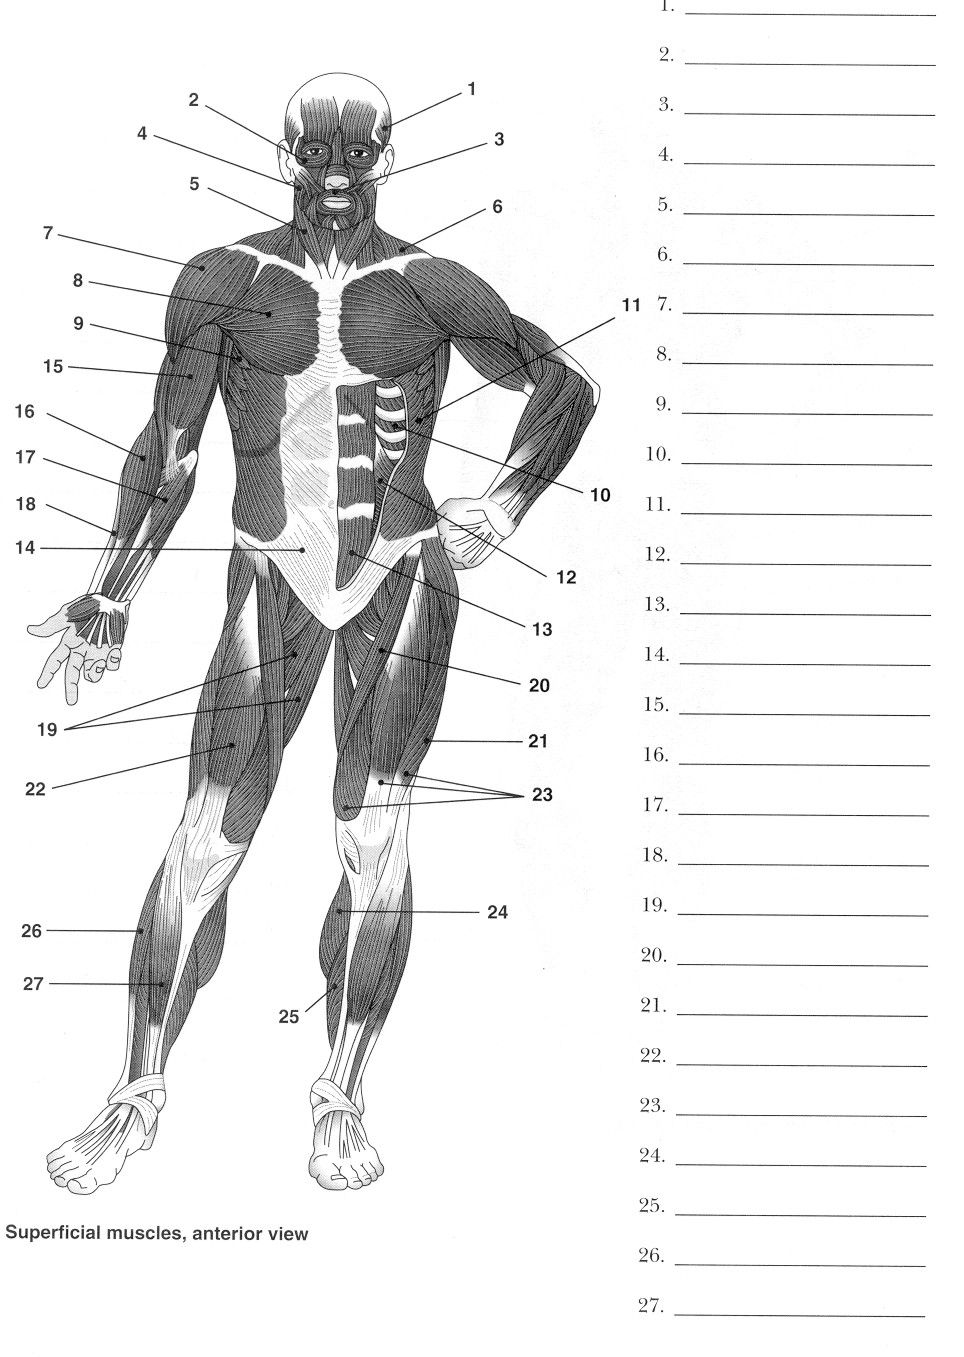 worksheet Anatomical Position Worksheet lymphatic worksheets bing images rn nurse pinterest head 6 best of printable muscle anatomy blank and neck muscles diagram muscular system worksheet l